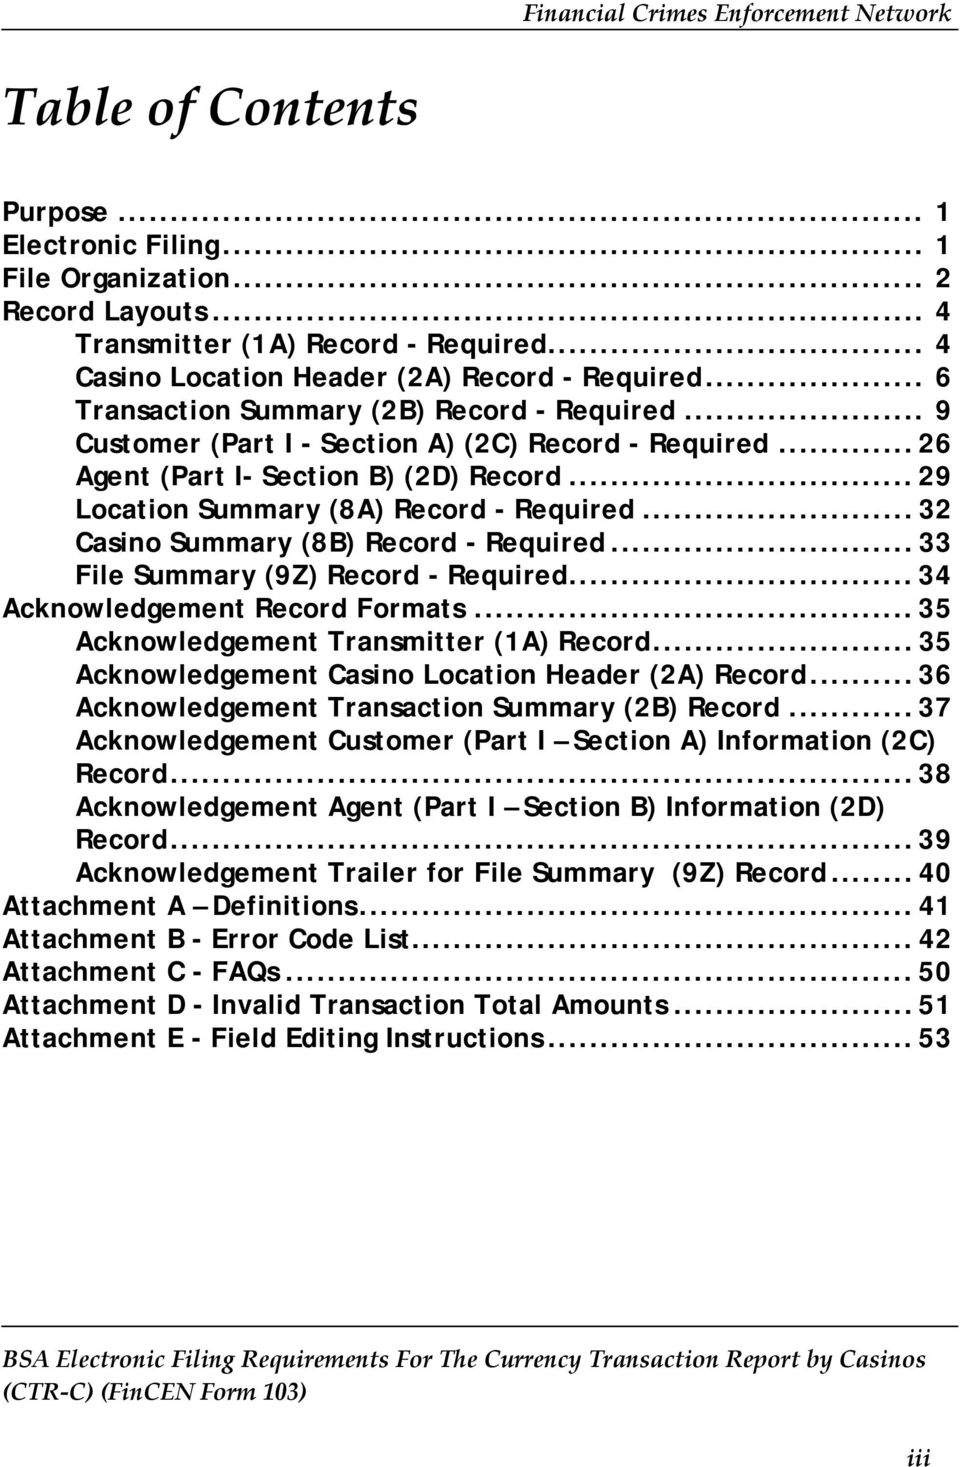 .. 32 Casino Summary (8B) Record - Required... 33 File Summary (9Z) Record - Required... 34 Acknowledgement Record Formats... 35 Acknowledgement Transmitter (1A) Record.